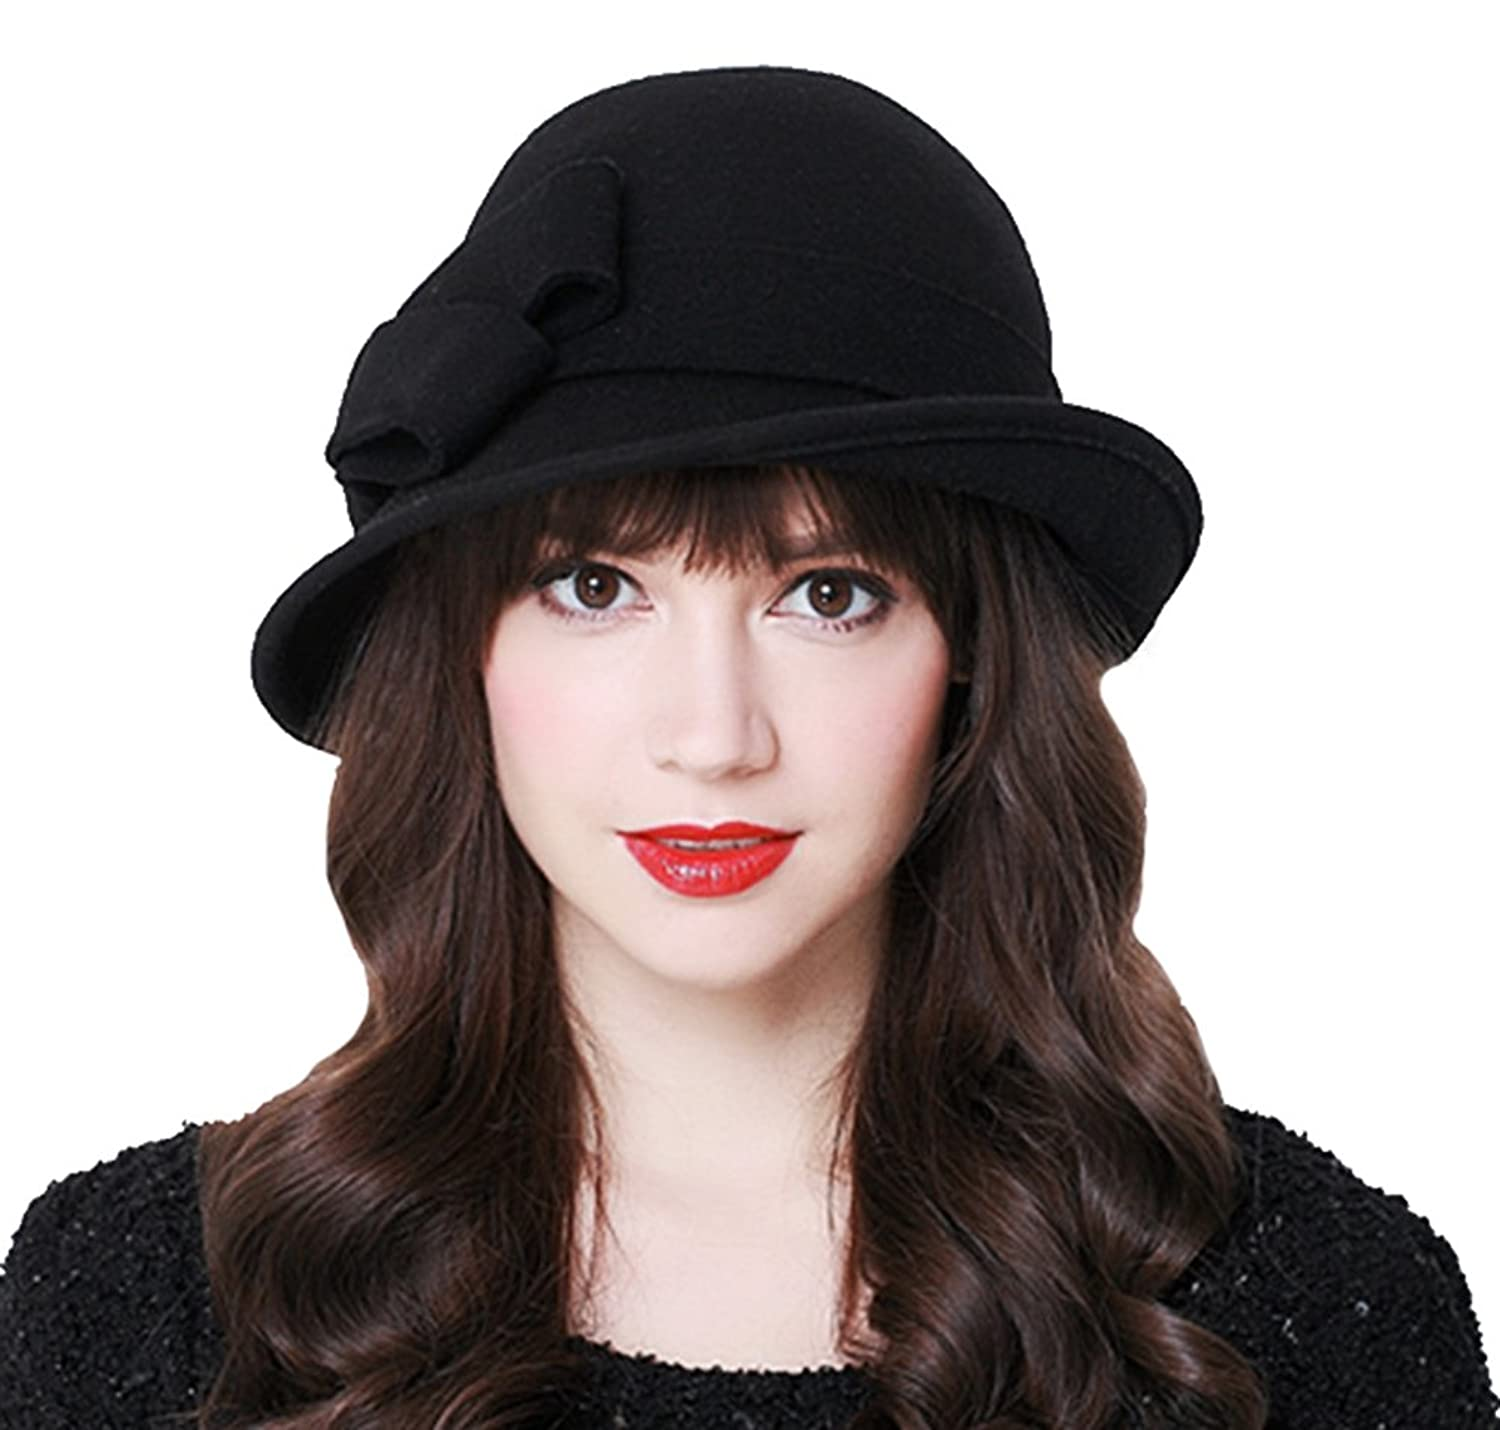 1940s Style Hats Bellady Women Solid Color Winter Hat 100% Wool Cloche Bucket with Bow Accent $21.99 AT vintagedancer.com